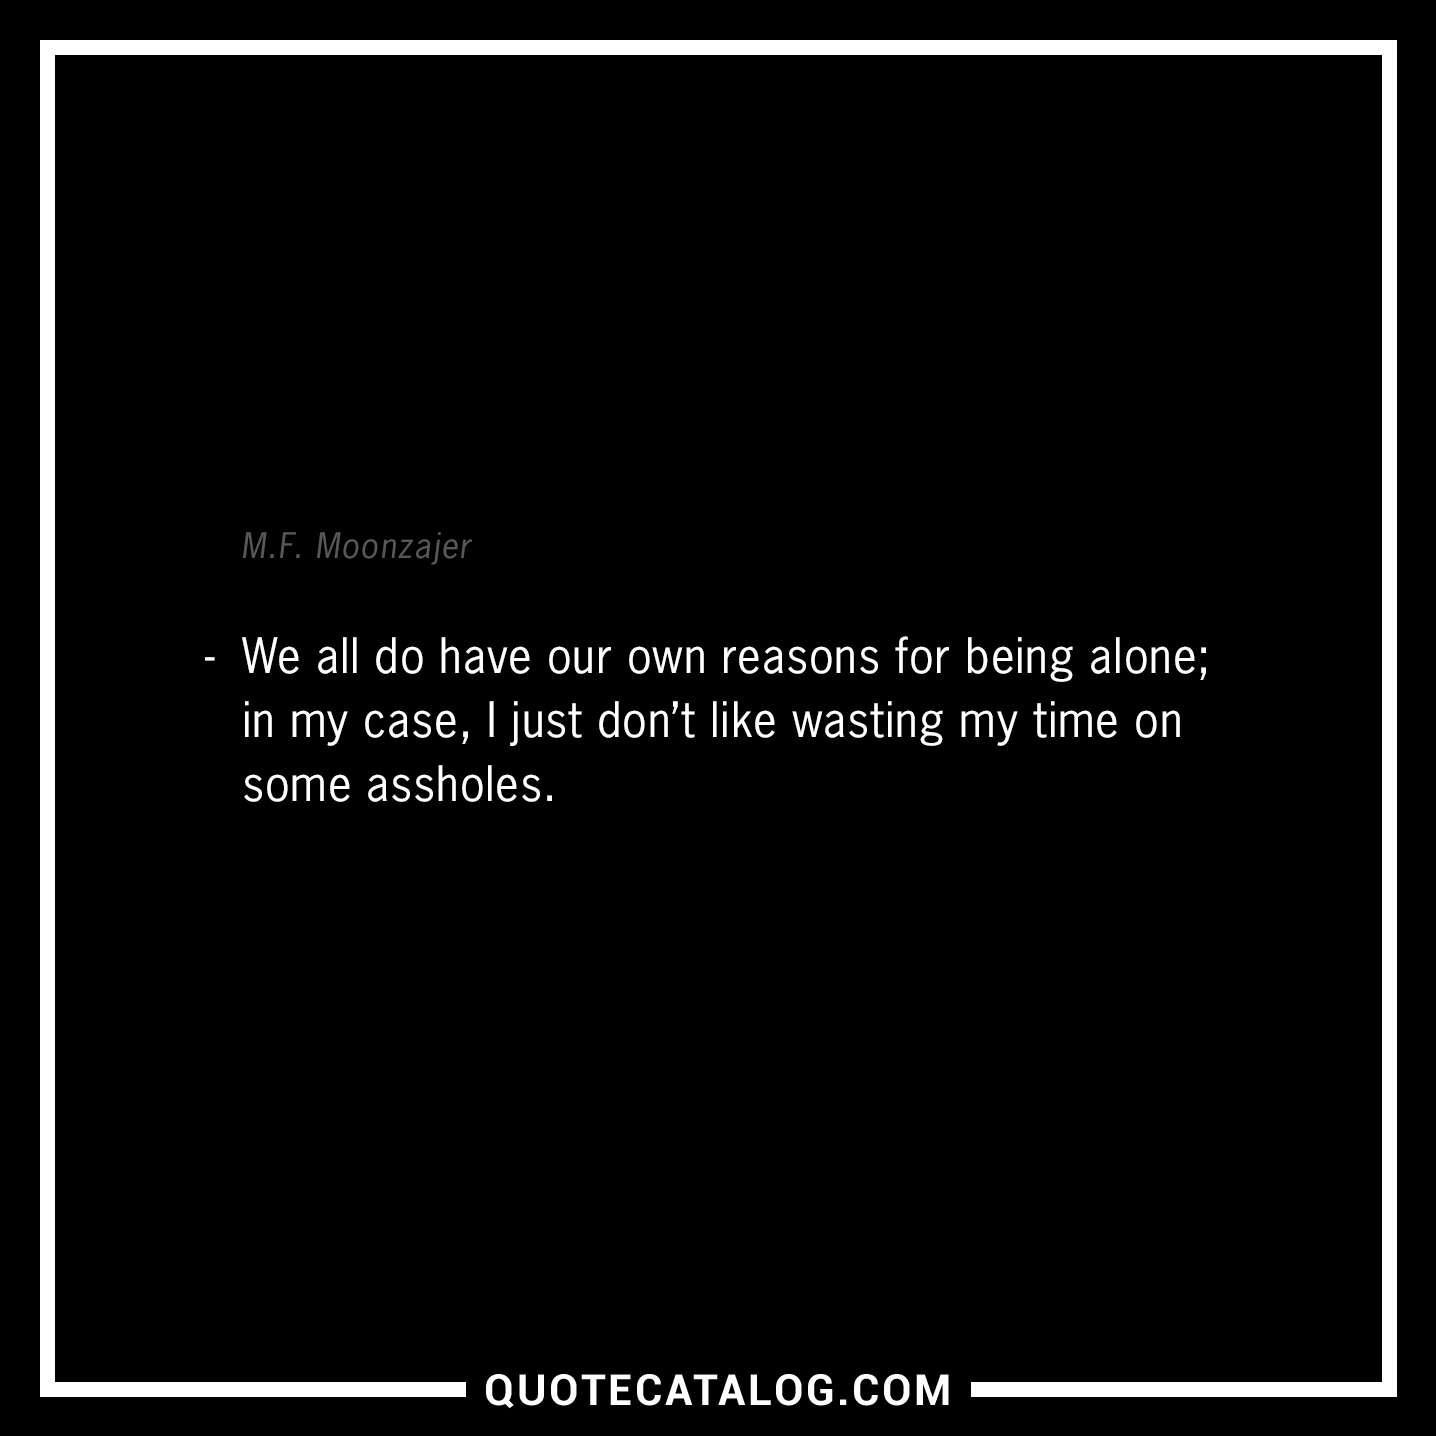 m f moonzajer quote we all do have our own reasons for being